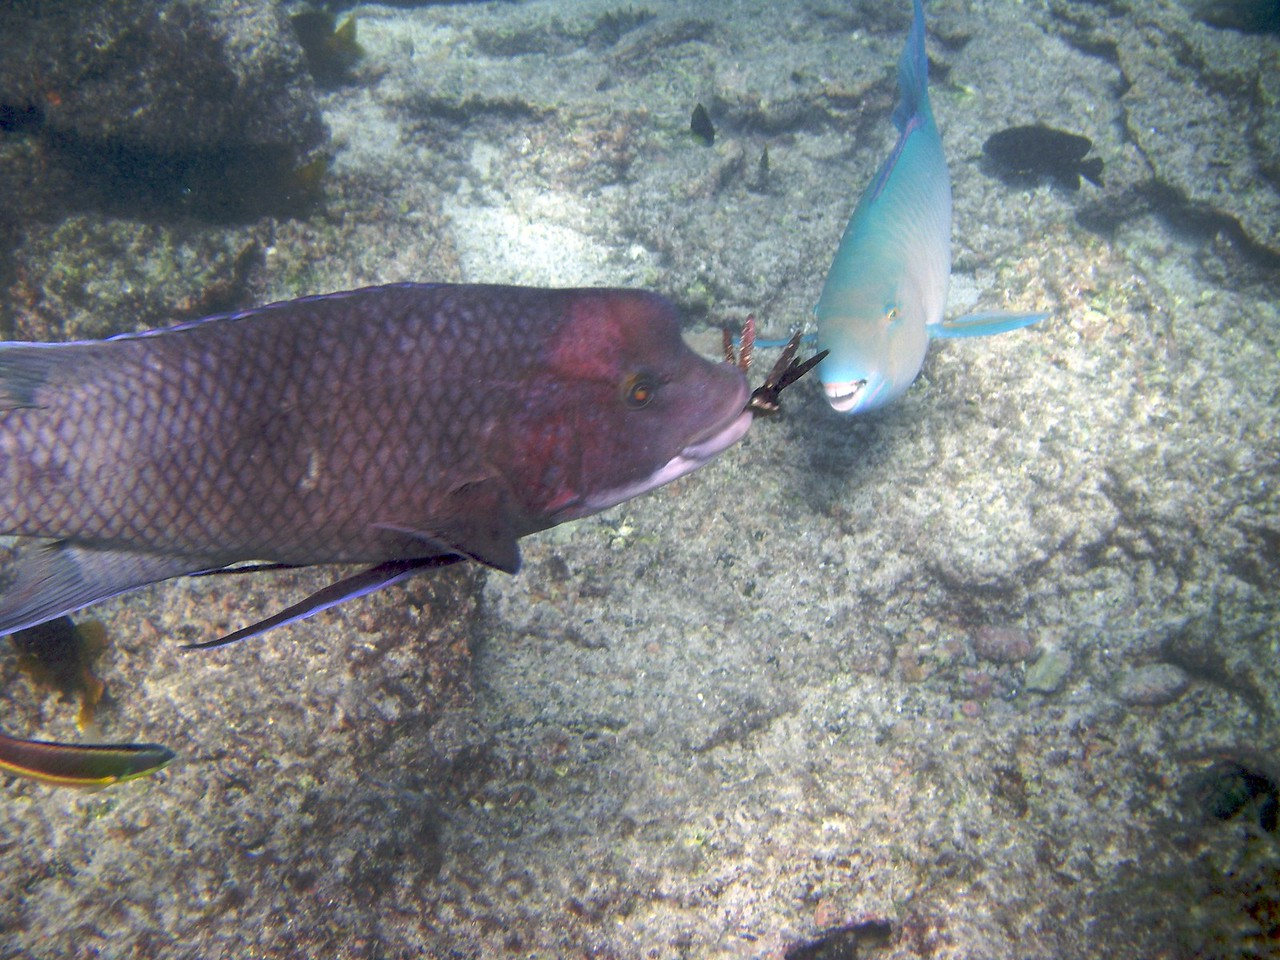 Parrot fish tries to steal anemone meal from hogfish